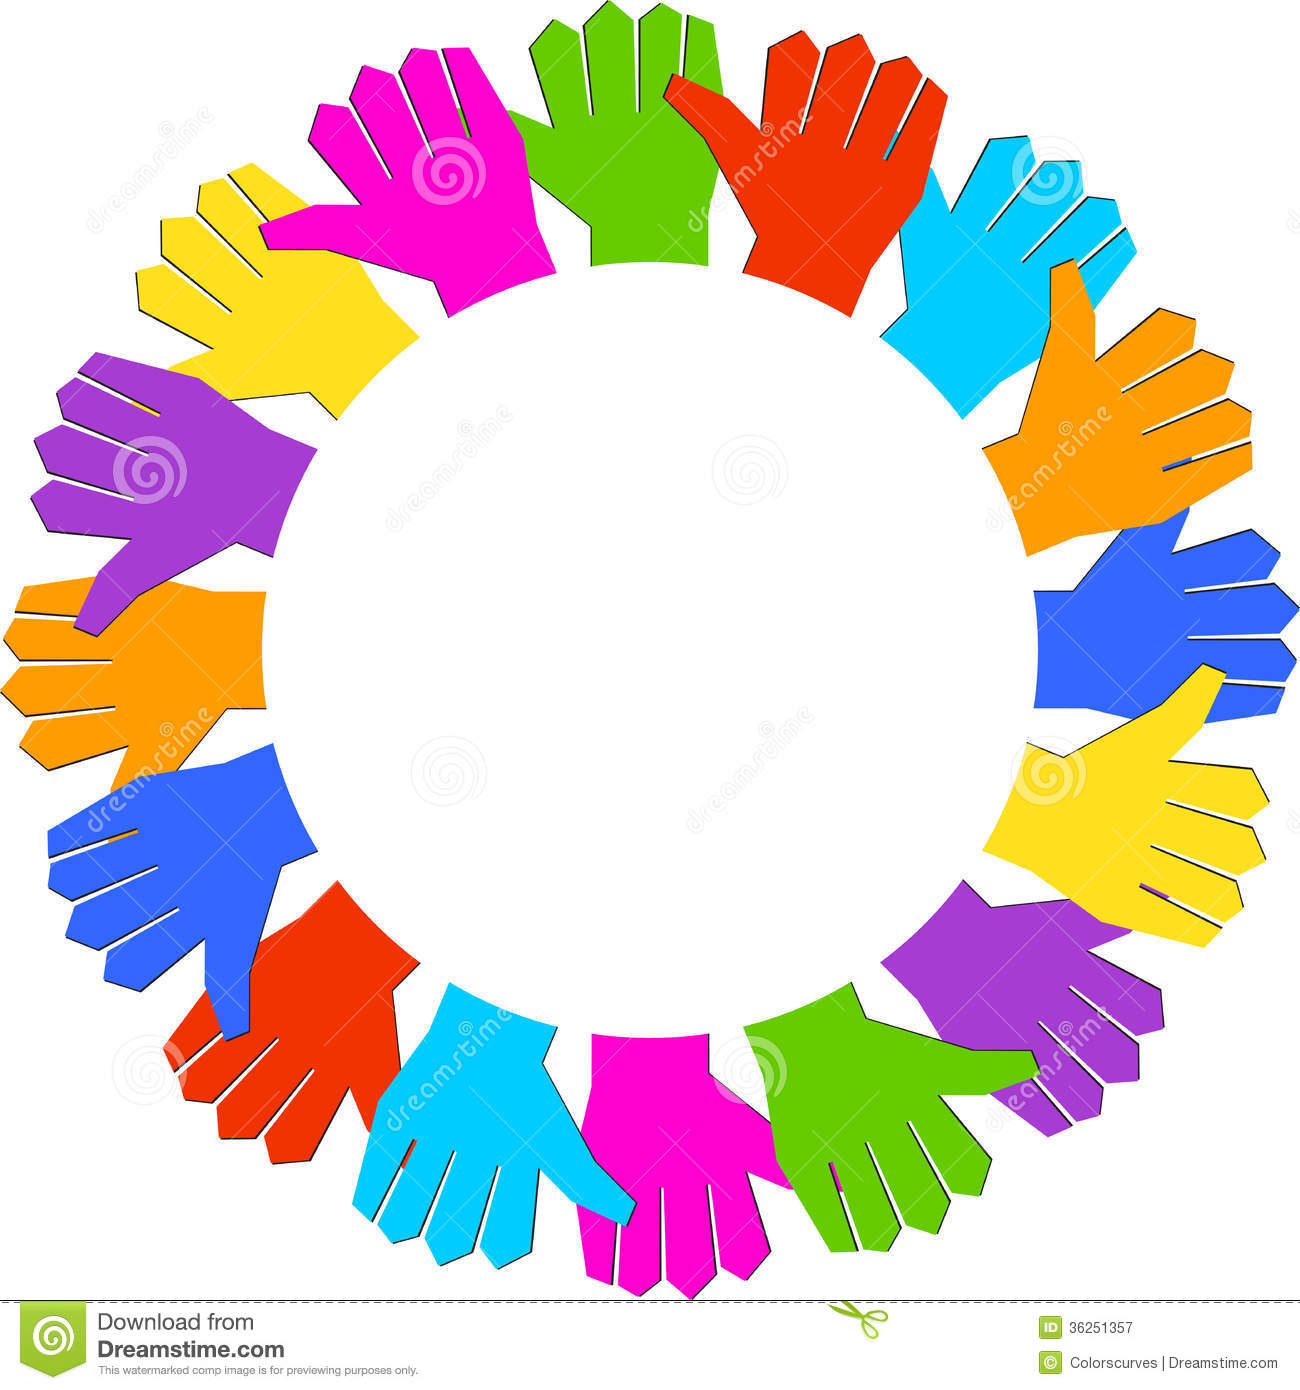 Rotation Hands Royalty Free Stock Photography.